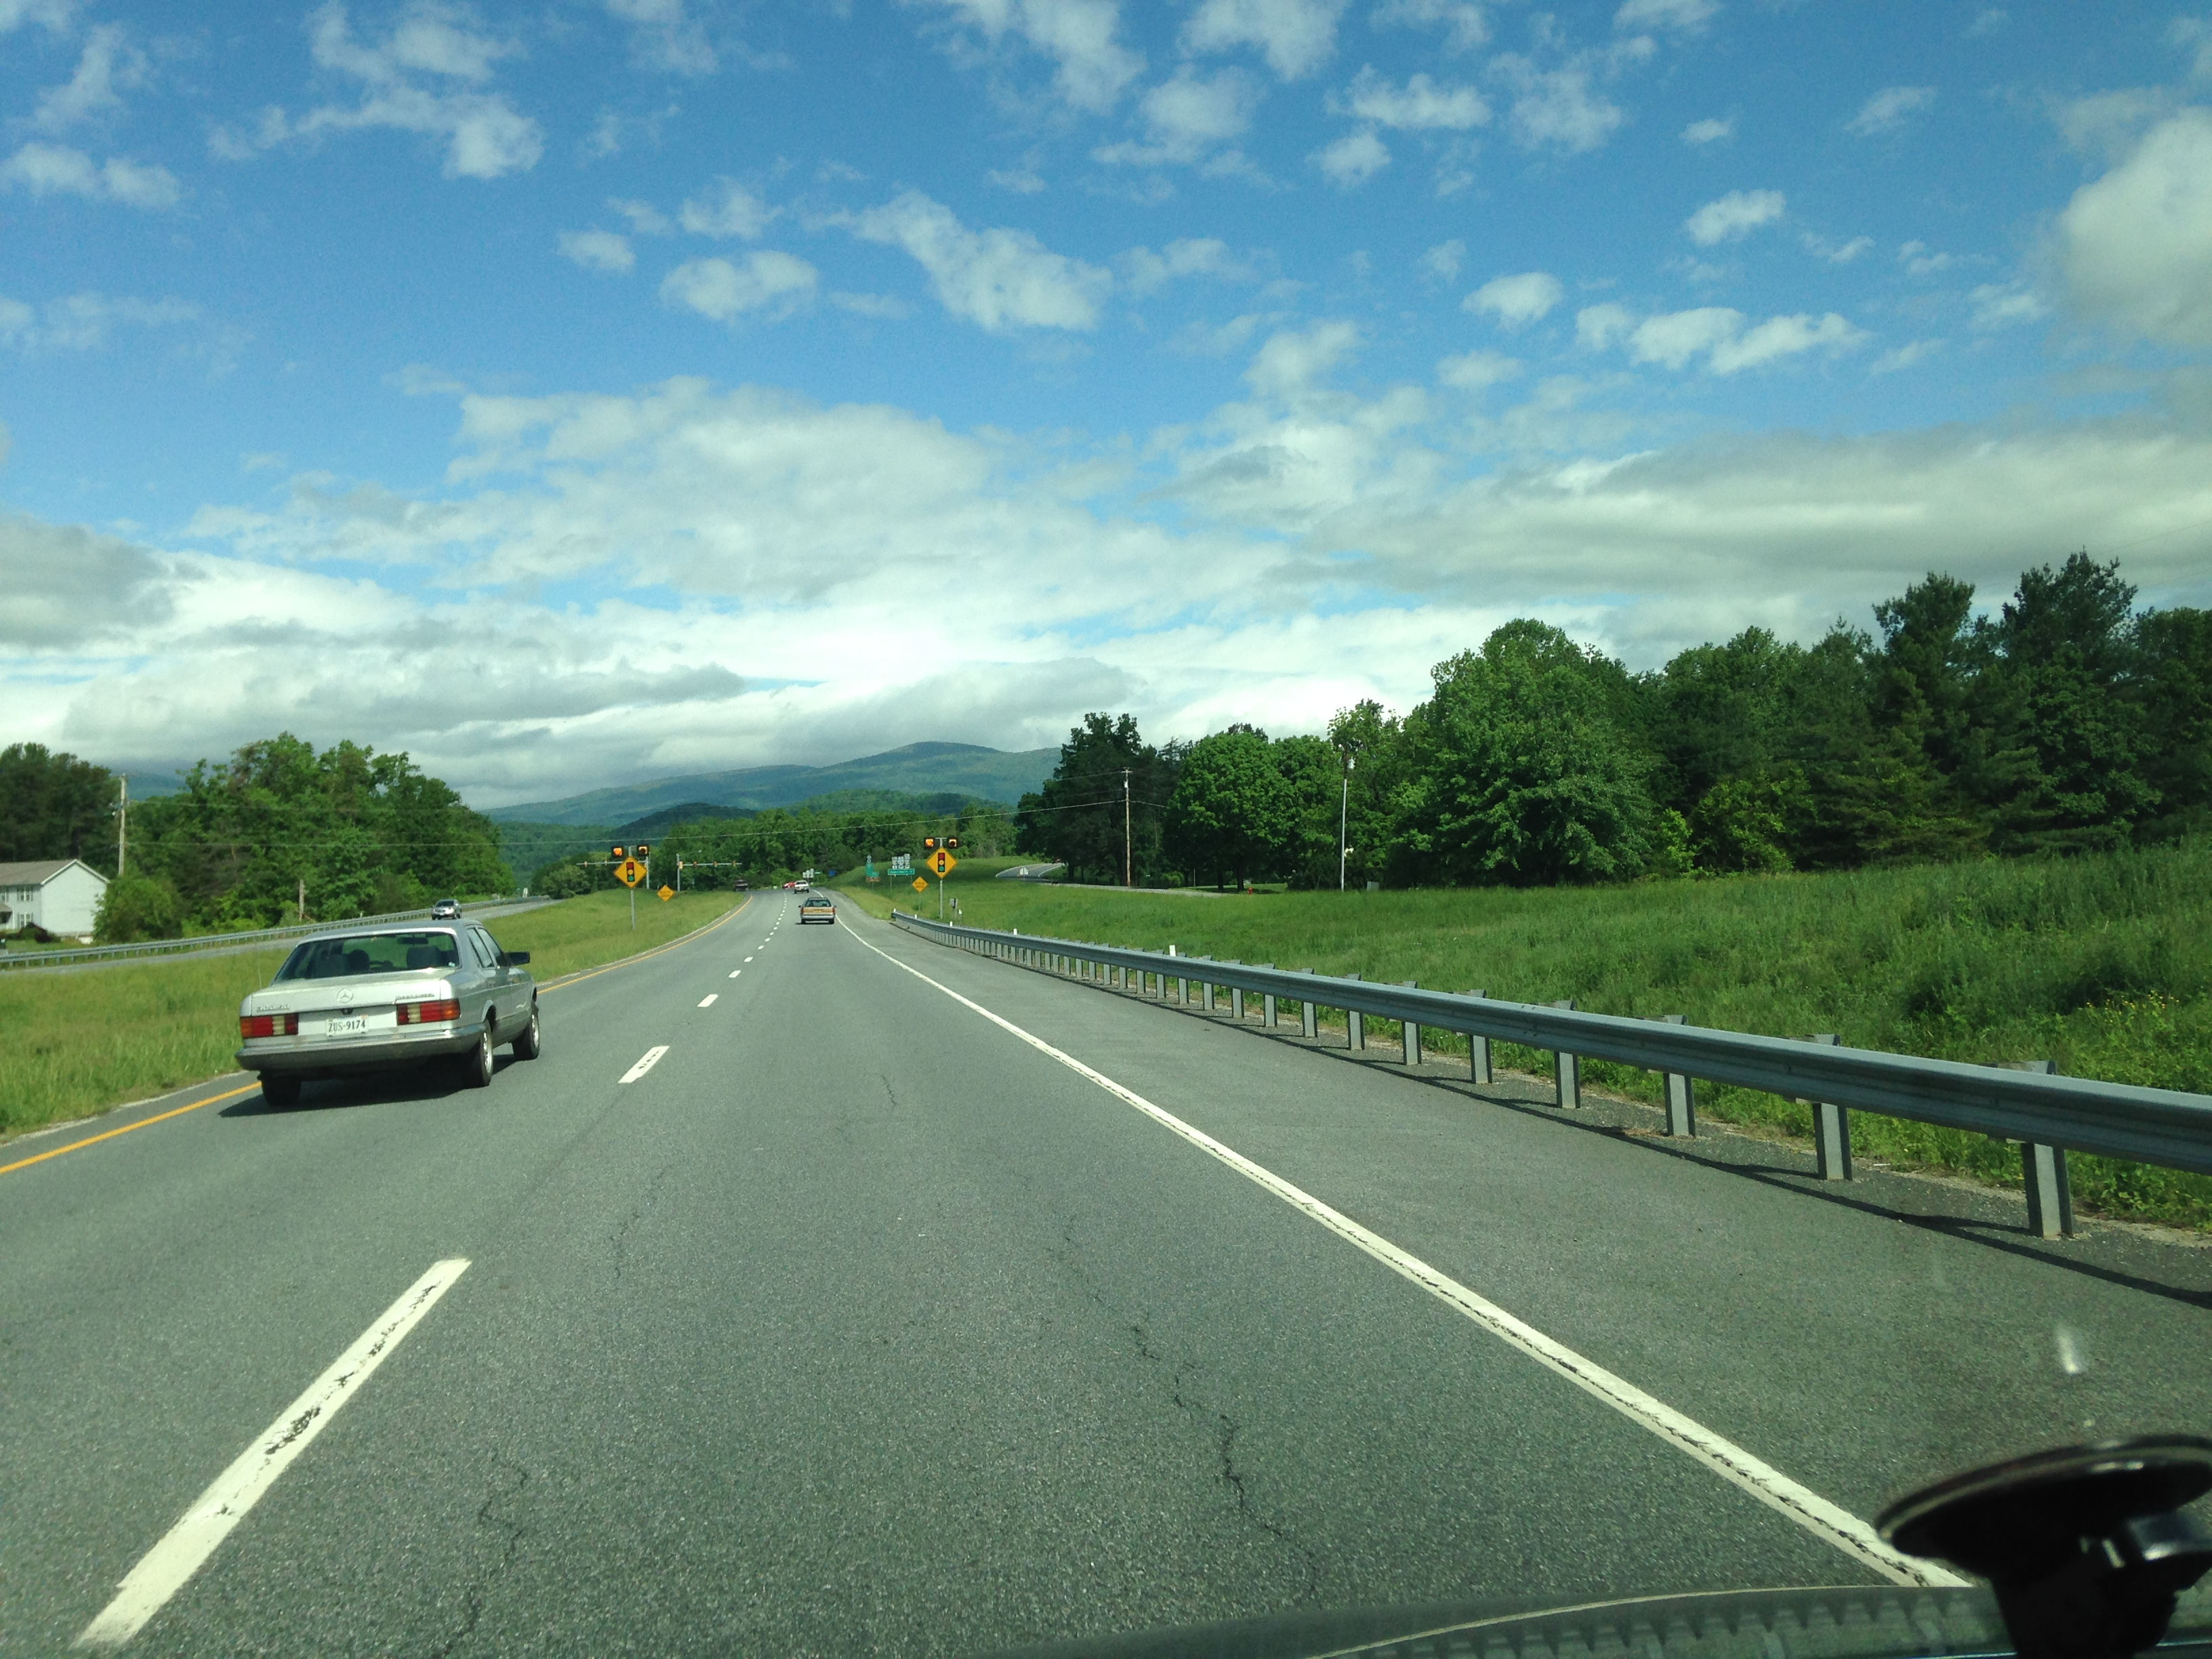 May 16-The mountains and sky were so pretty that day. I had to take this picture on my way to Stanardsville.